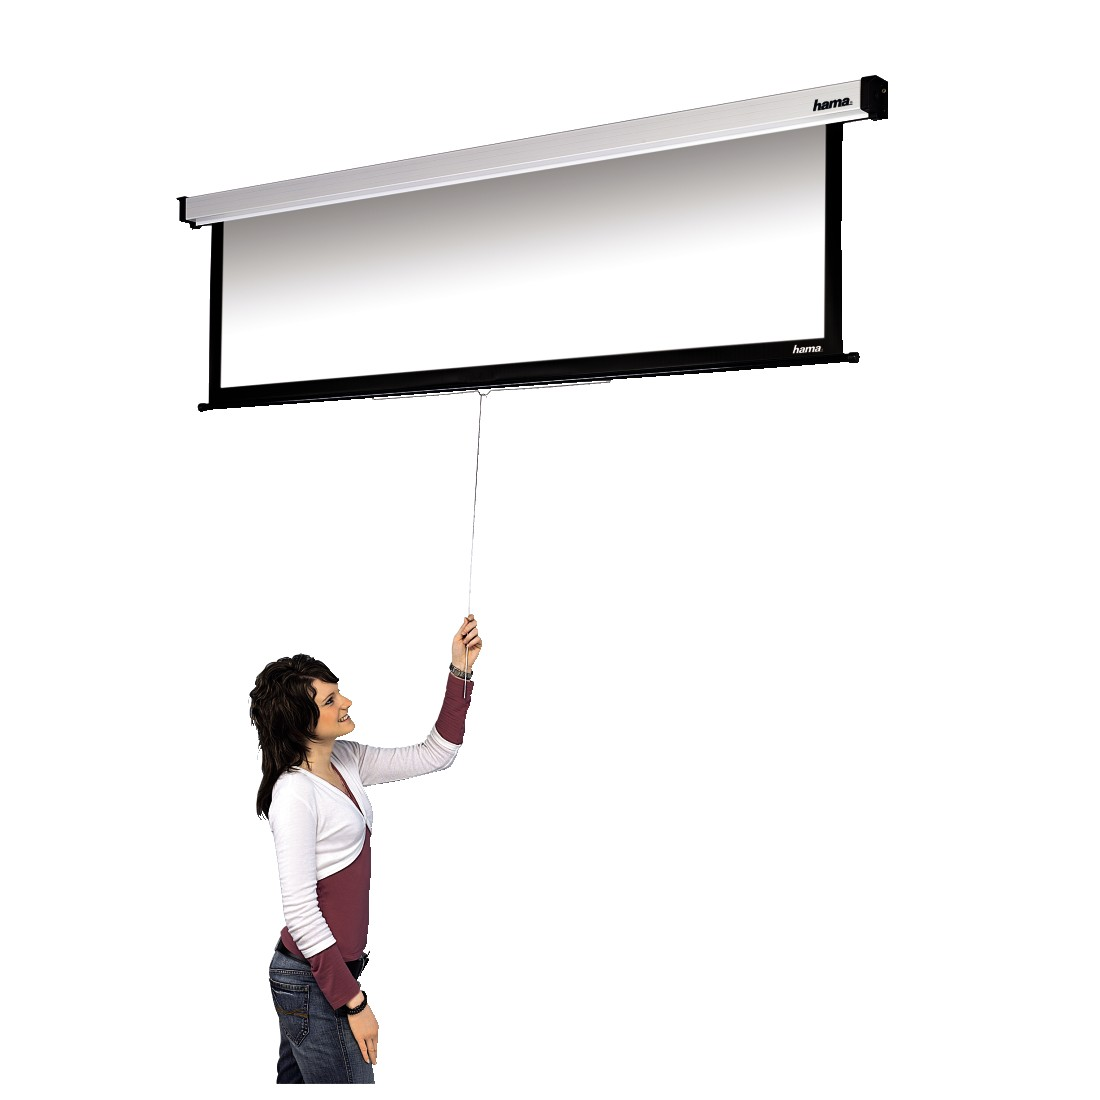 awx2 High-Res Appliance 2 - Hama, Roller Projection Screen, 240 x 195 cm, 4:3